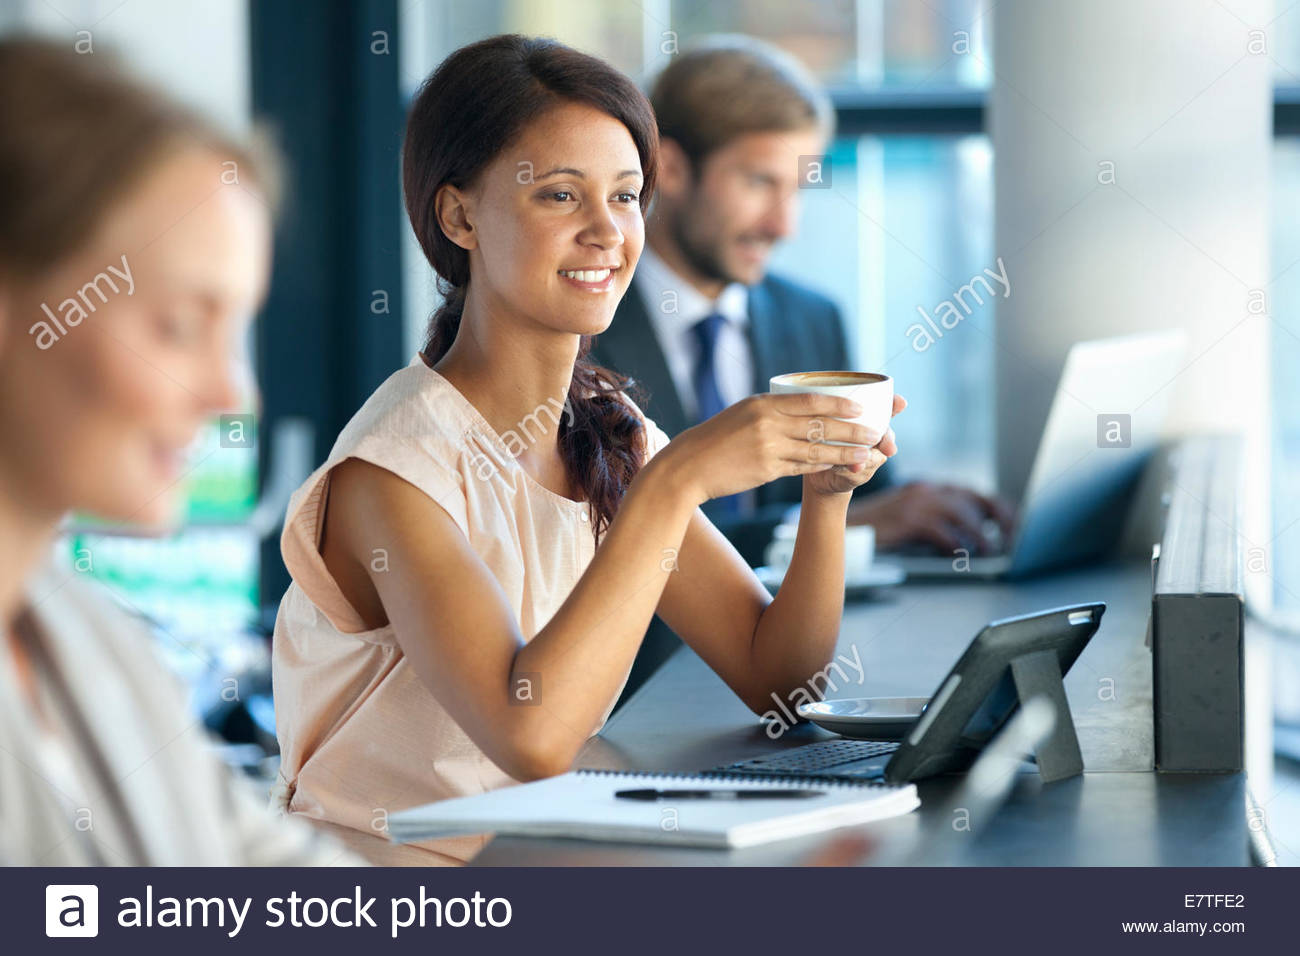 Smiling businesswoman drinking coffee in coffee shop Photo Stock